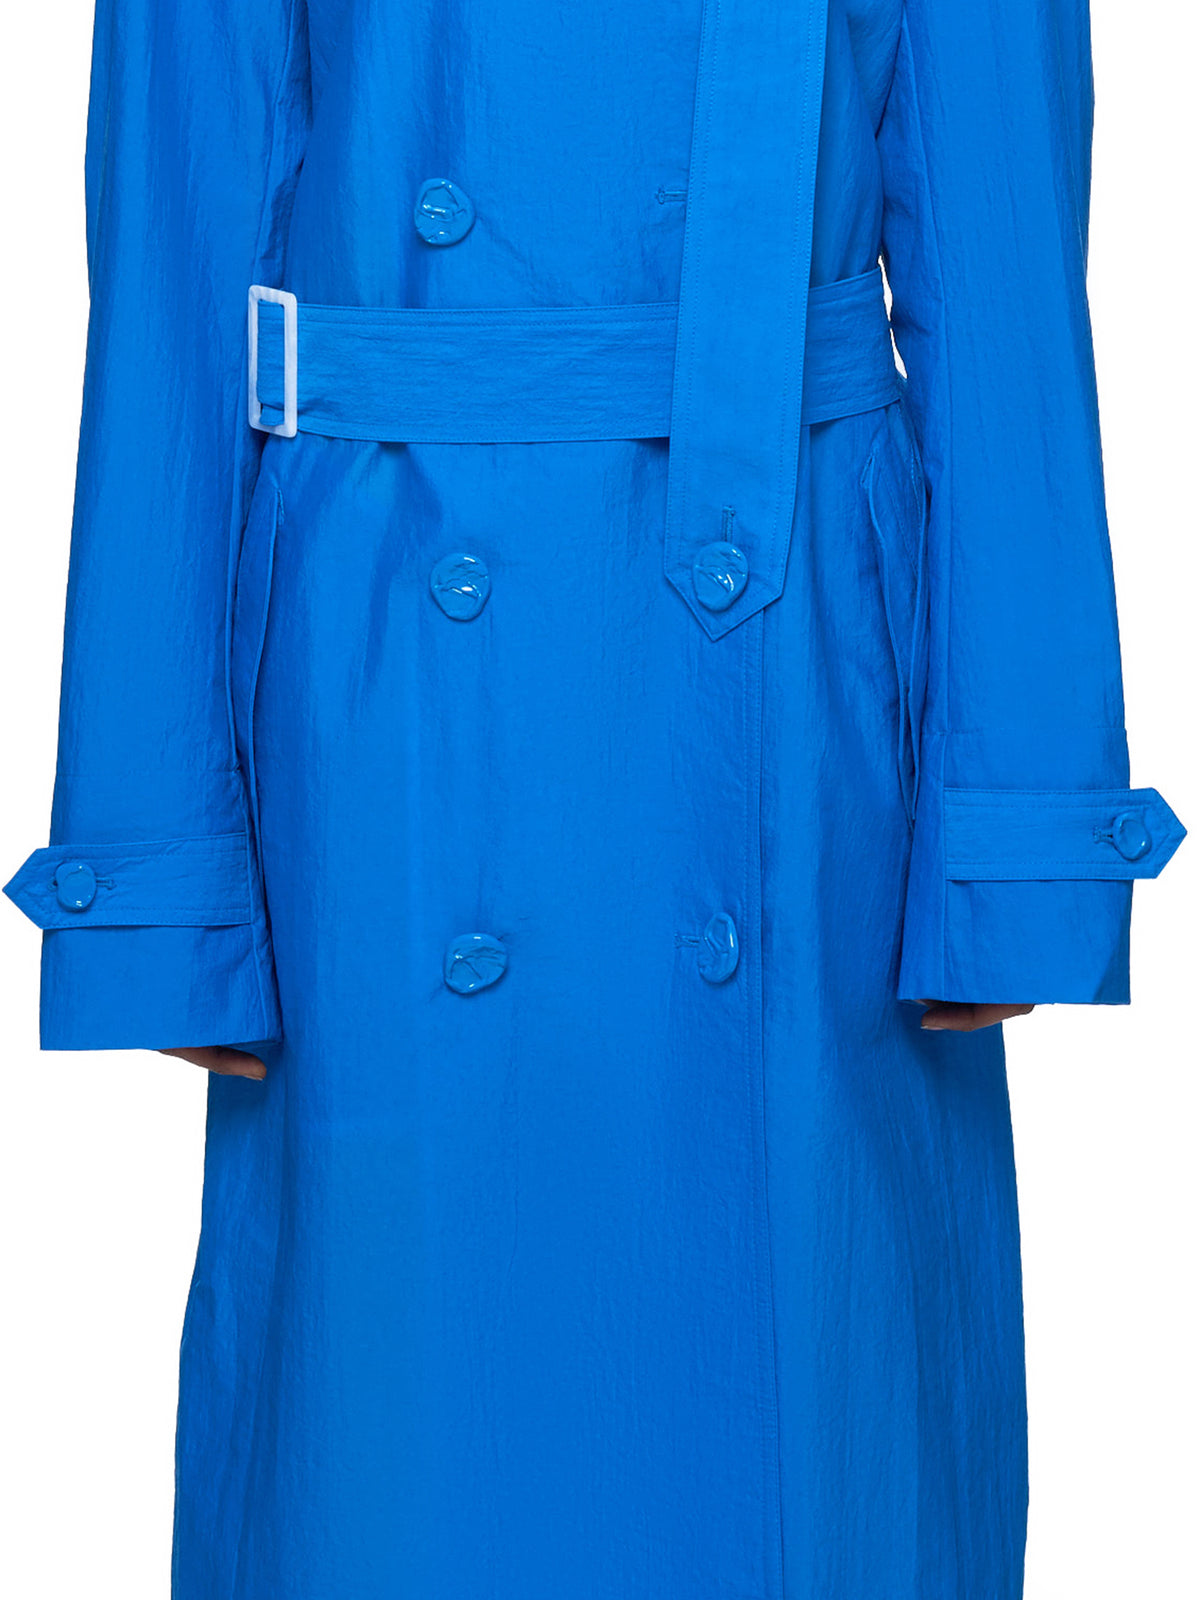 Tibi Coat - Hlorenzo Detail 2